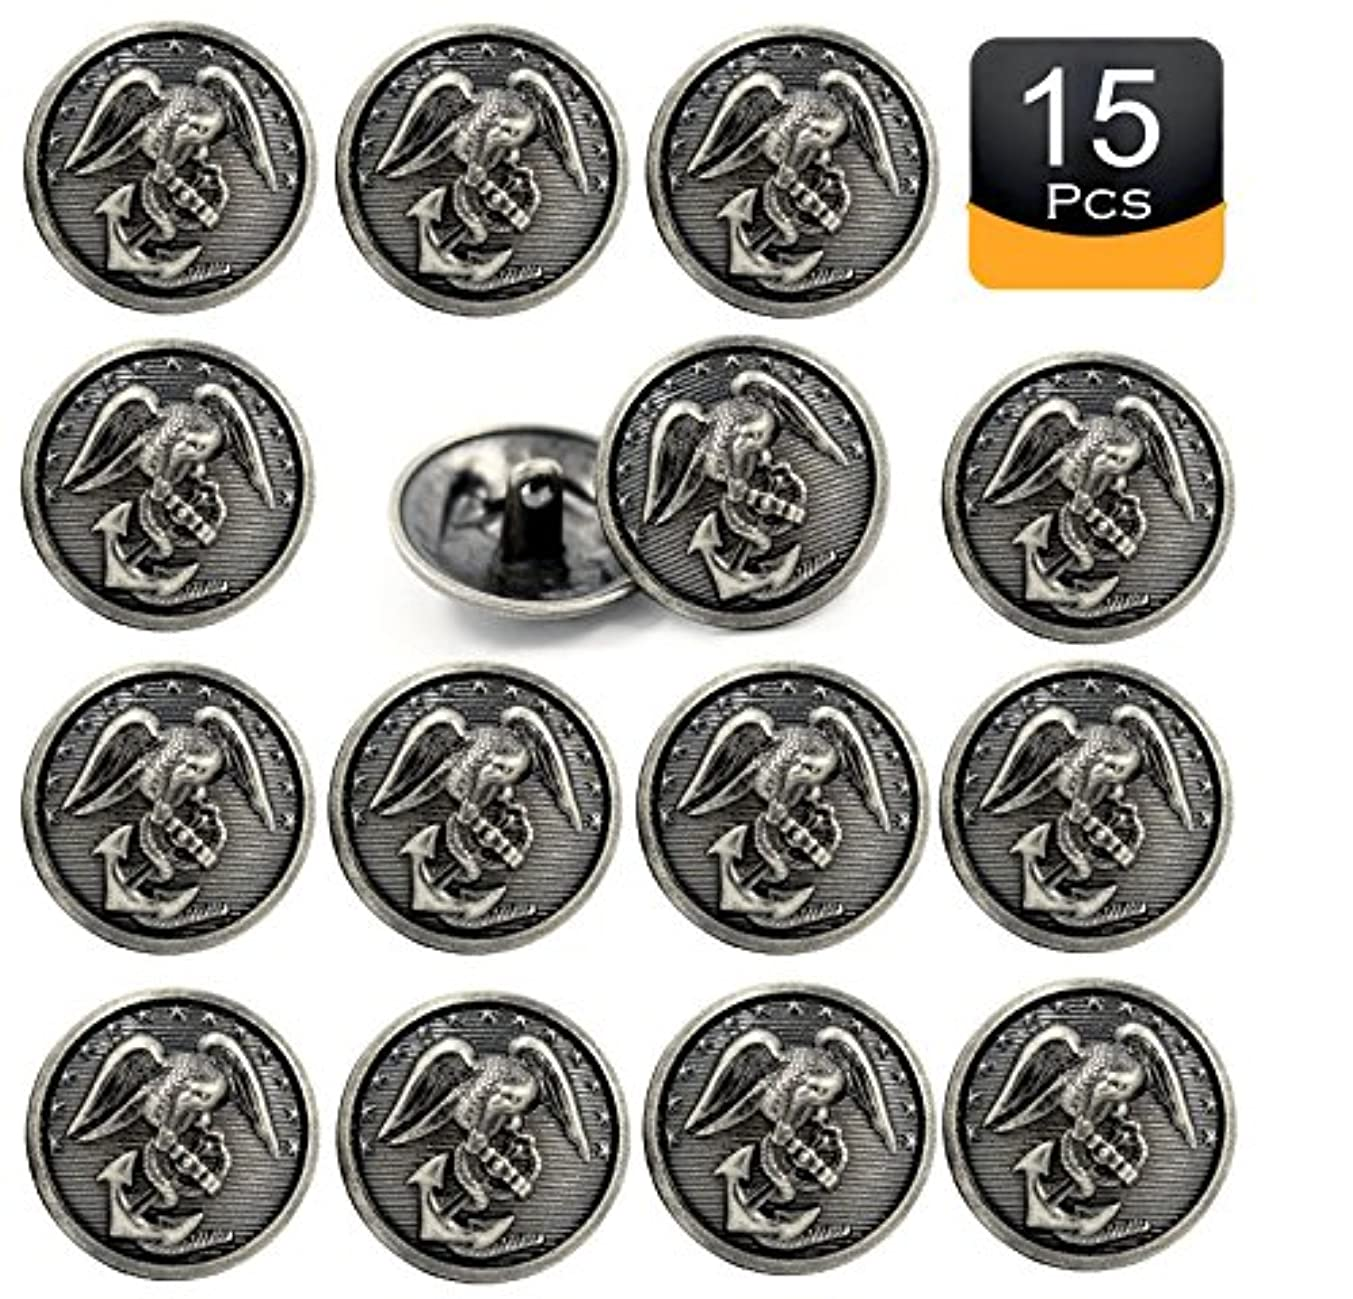 Bezelry 15 Pieces Eagle & Anchor Marine Corps Old Emblem Gray Silver Color Metal Shank Buttons 23mm